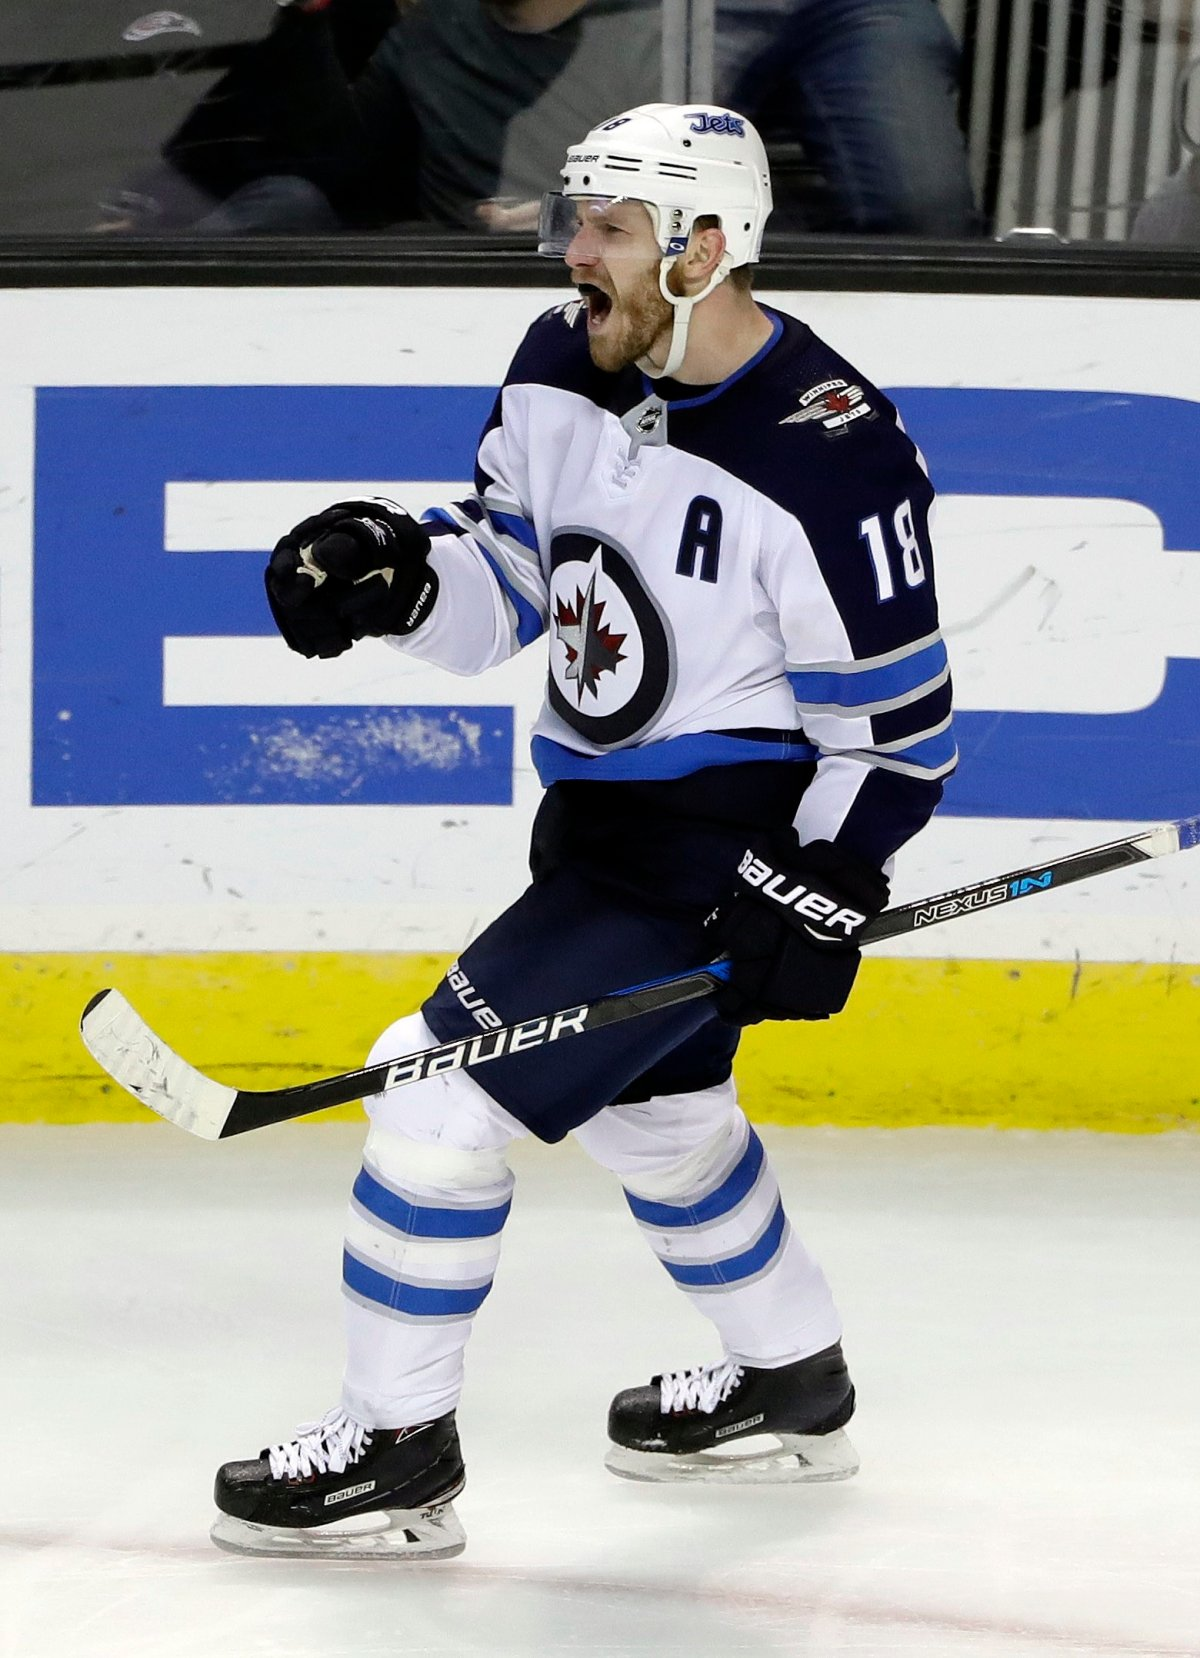 Doctors have recommended Winnipeg Jets forward Bryan Little sit out next season.